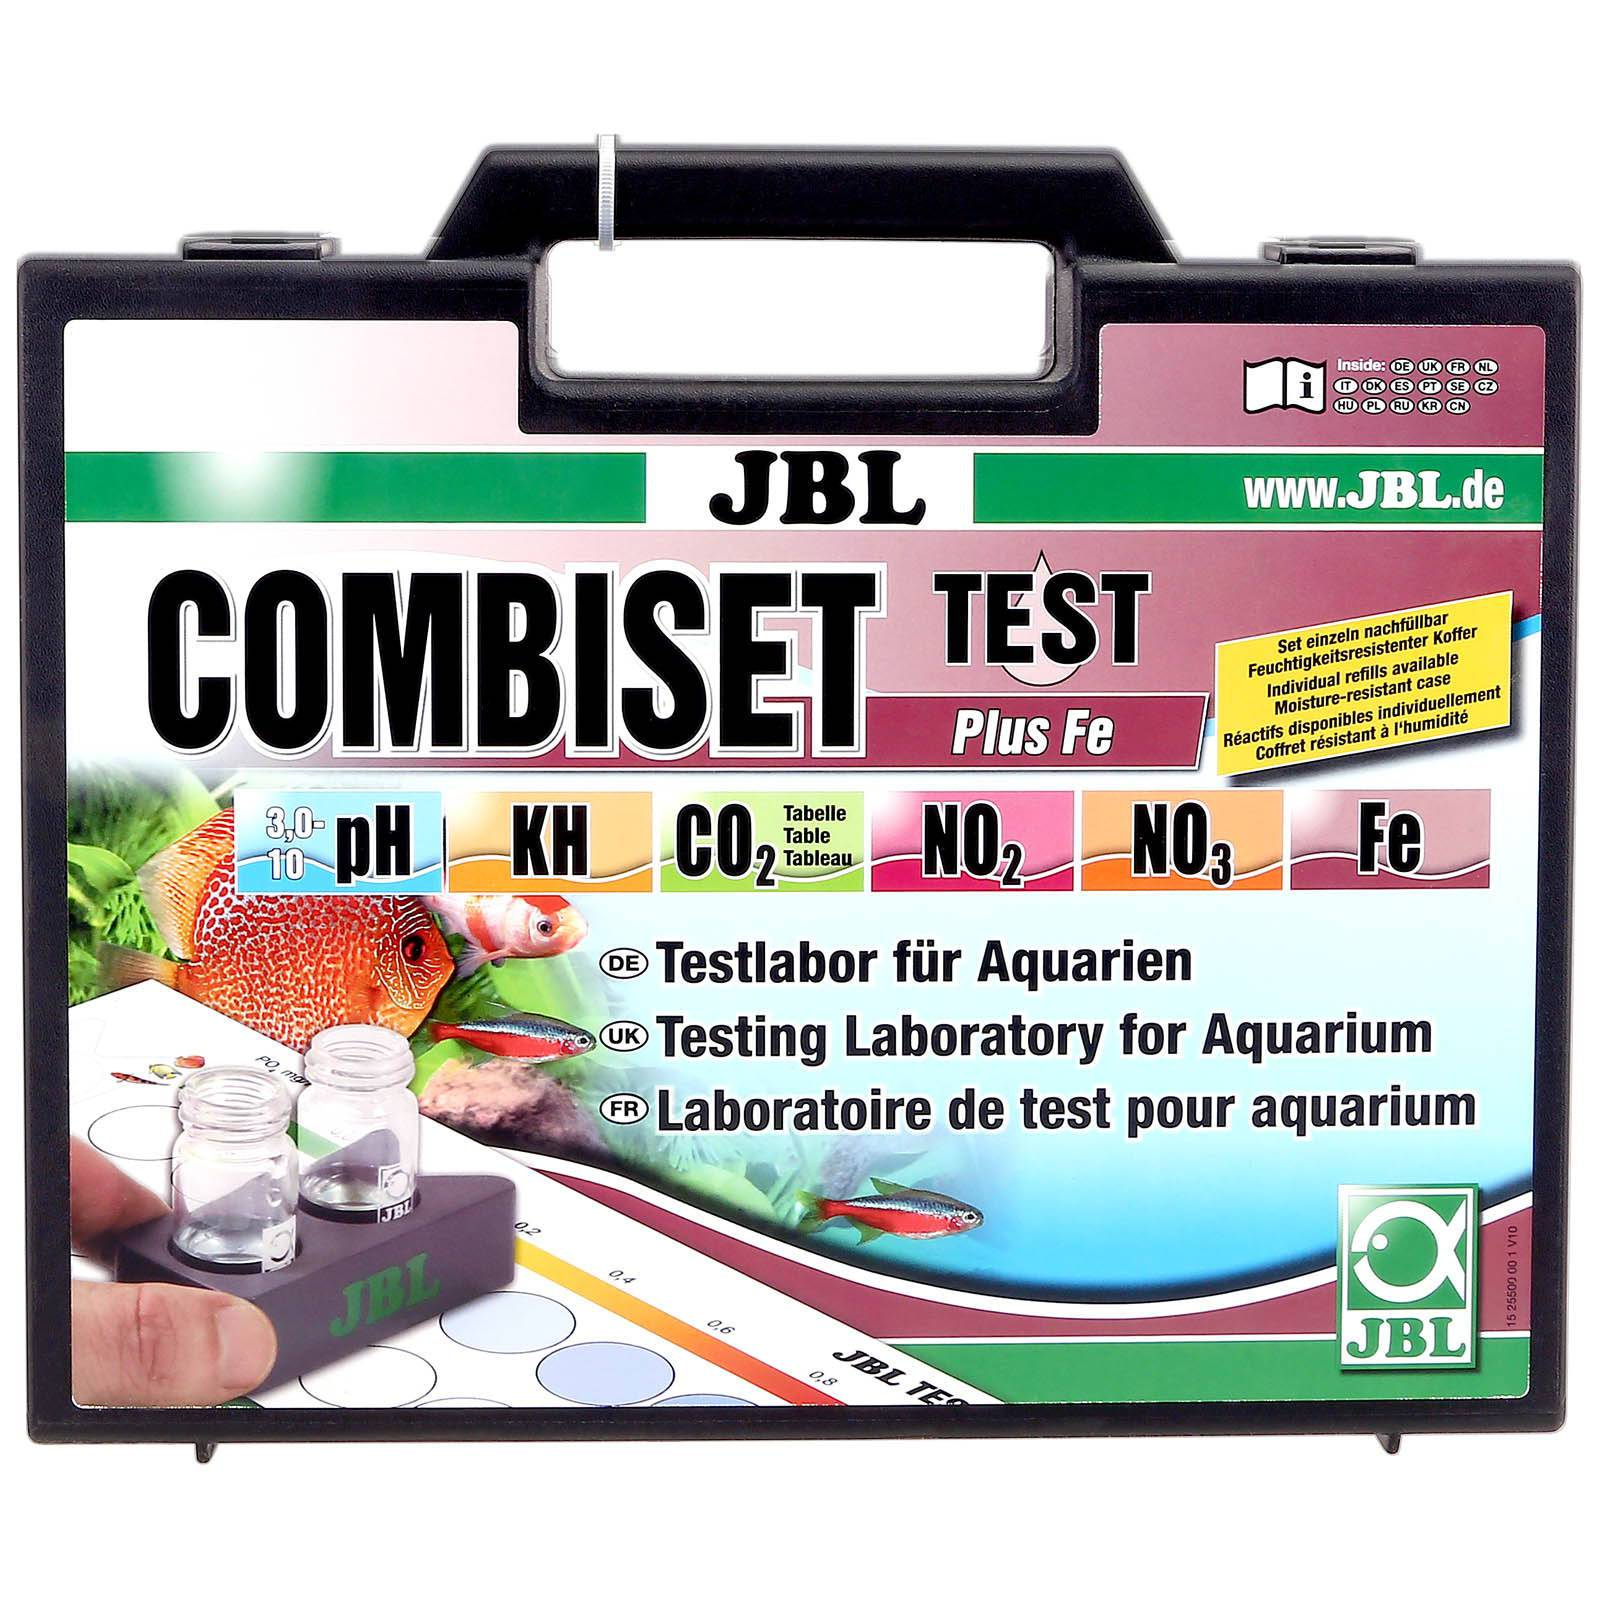 JBL - Combi Test Set - Plus Fe